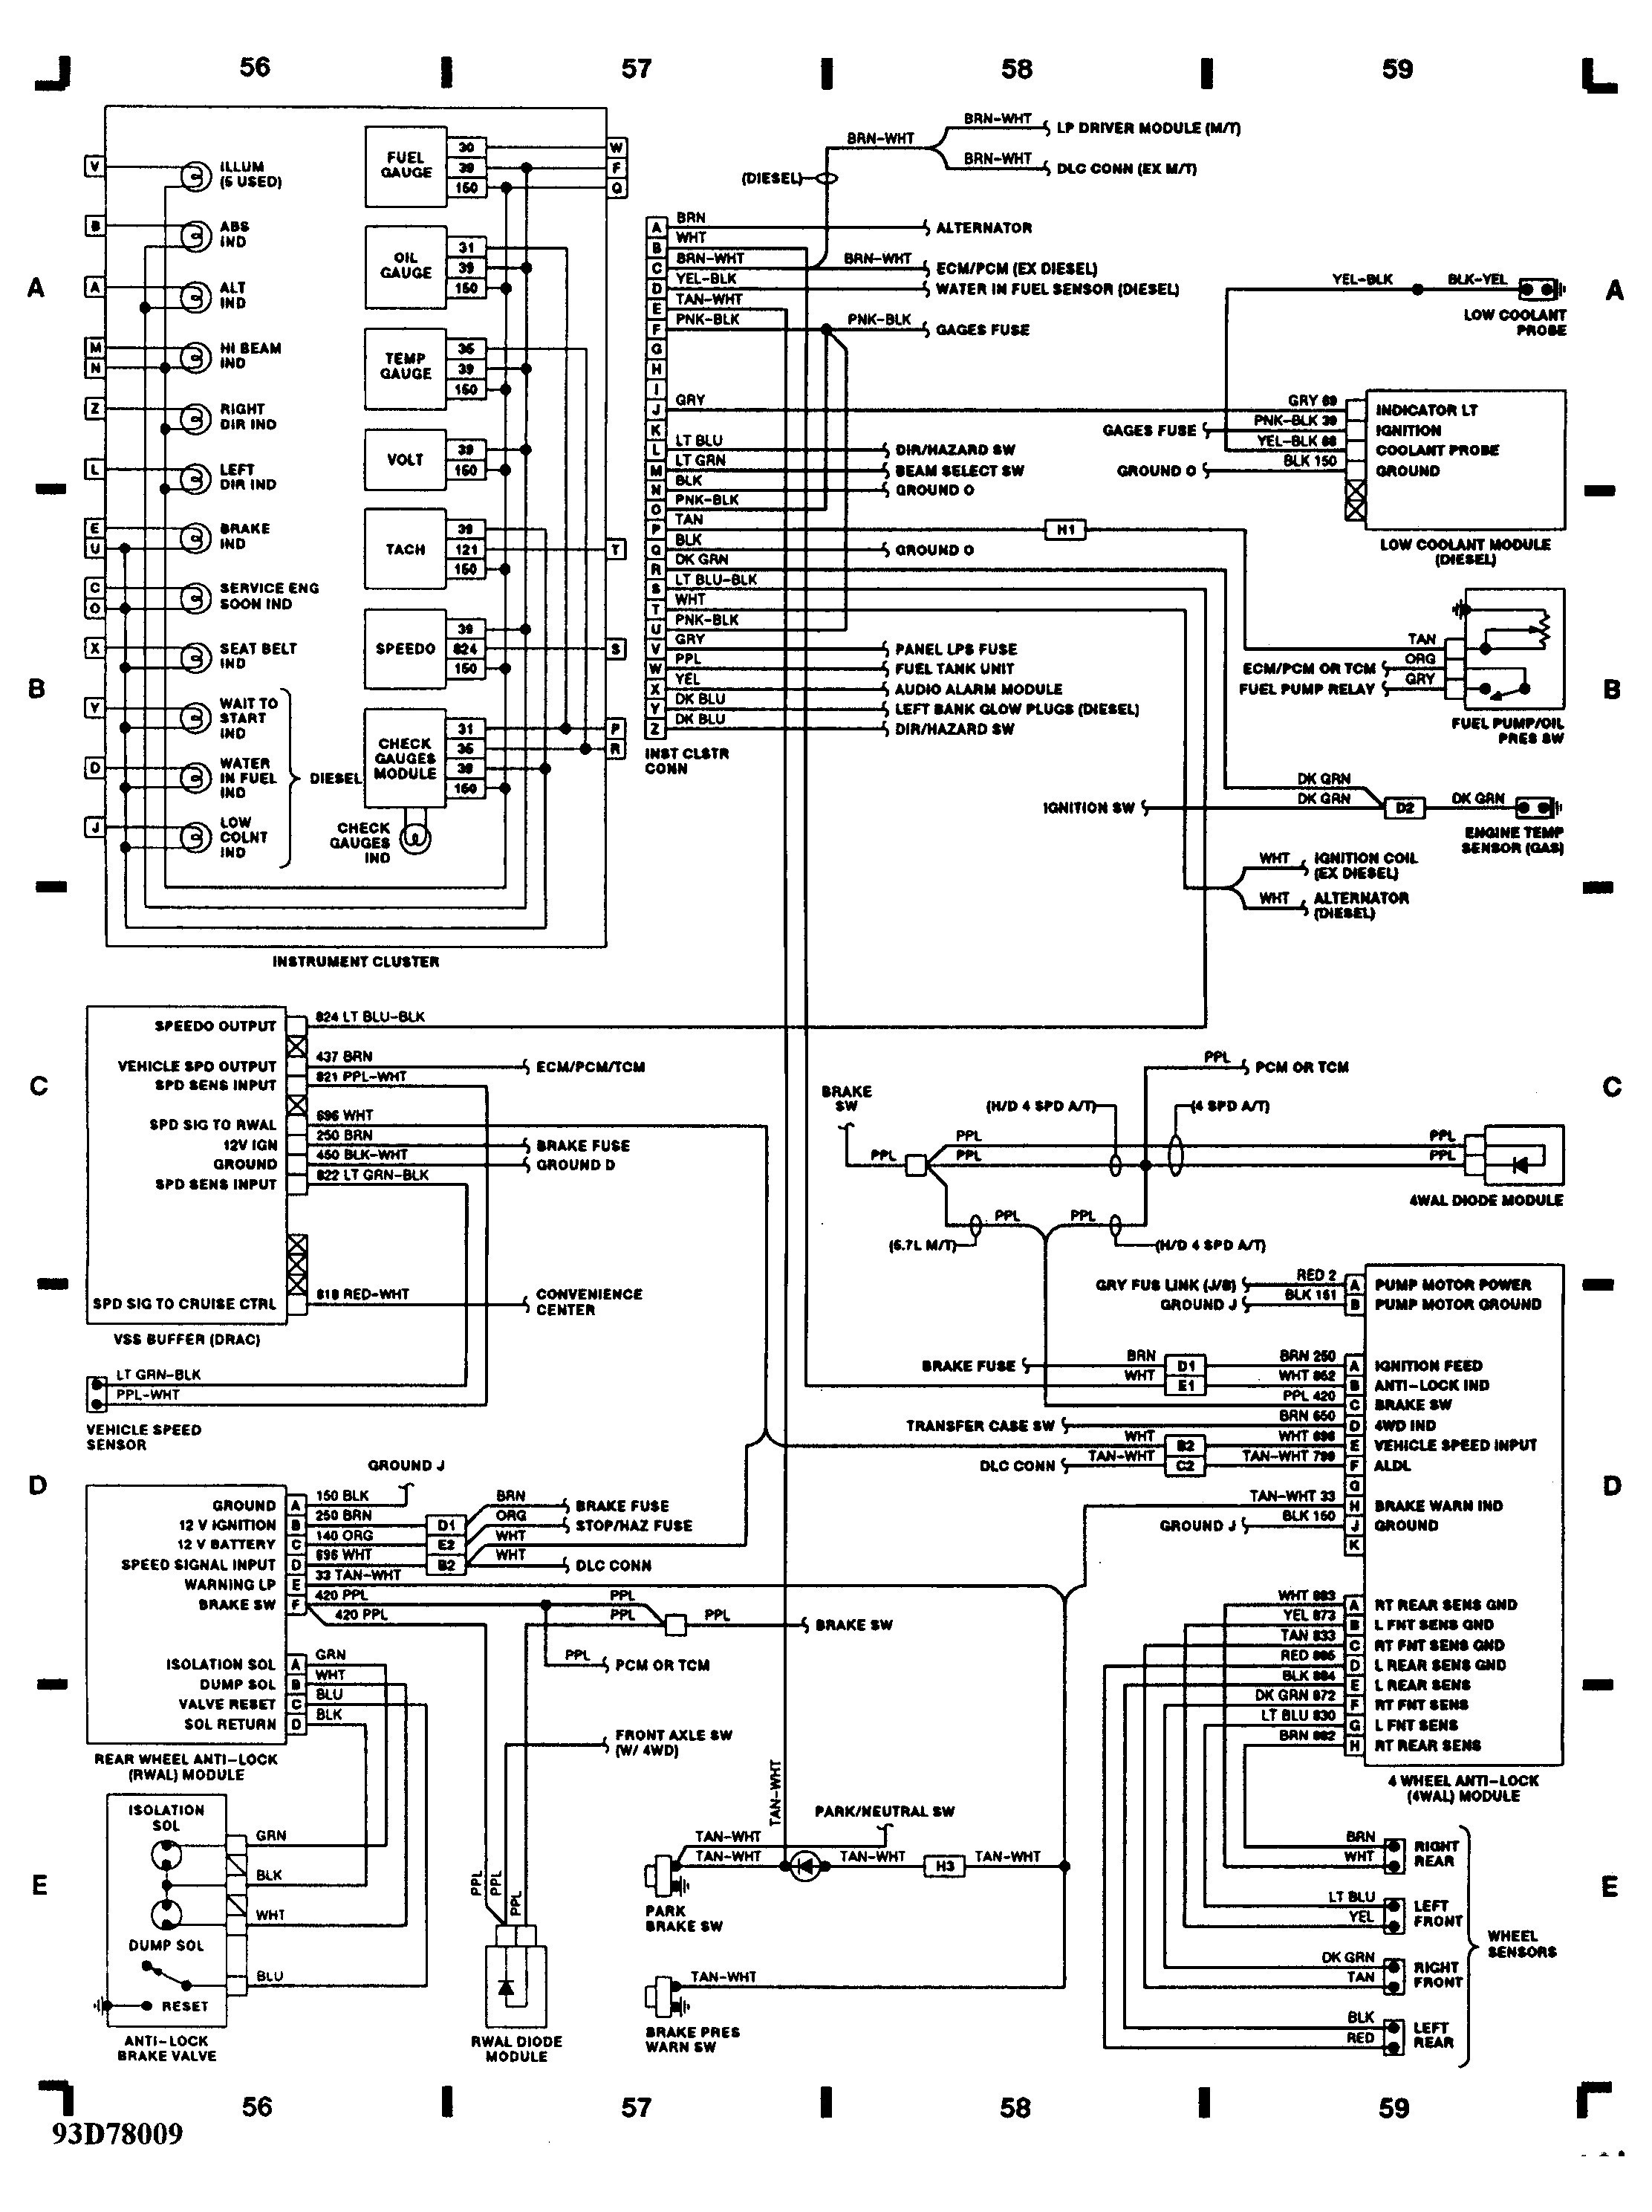 Gm 3800 Engine Diagram Gm 5 7 Engine Diagram Library Wiring Diagram • Of Gm 3800 Engine Diagram